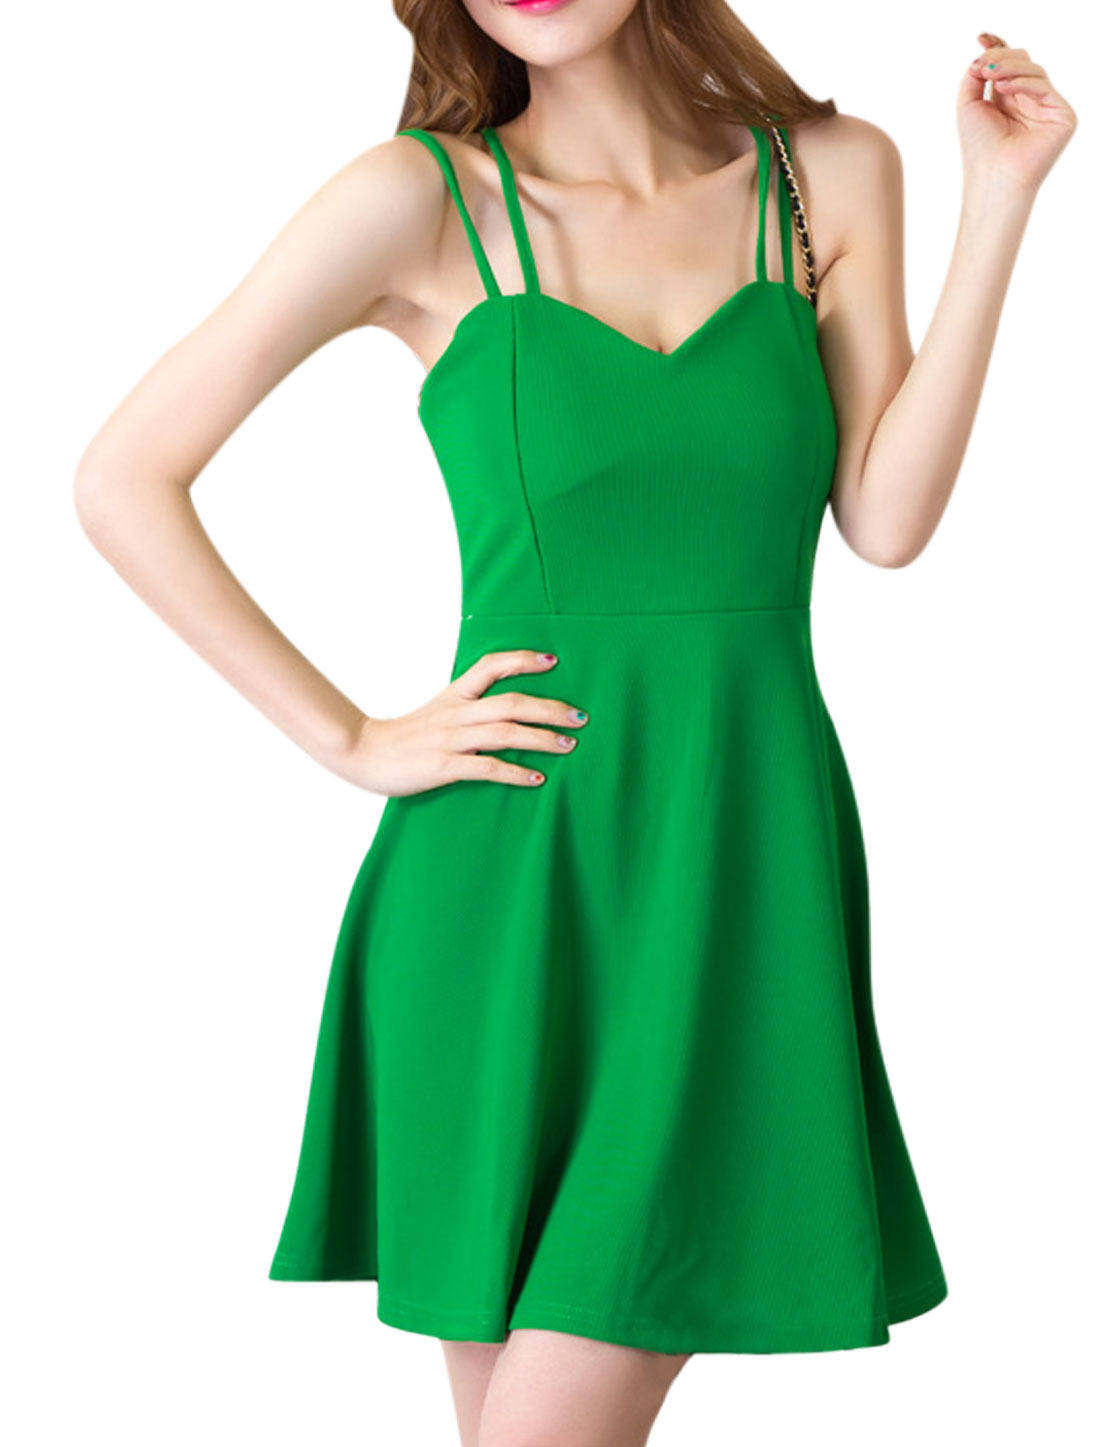 Ladies Sweetheart Neckline Spaghetti Strap Unlined Dresses Green S